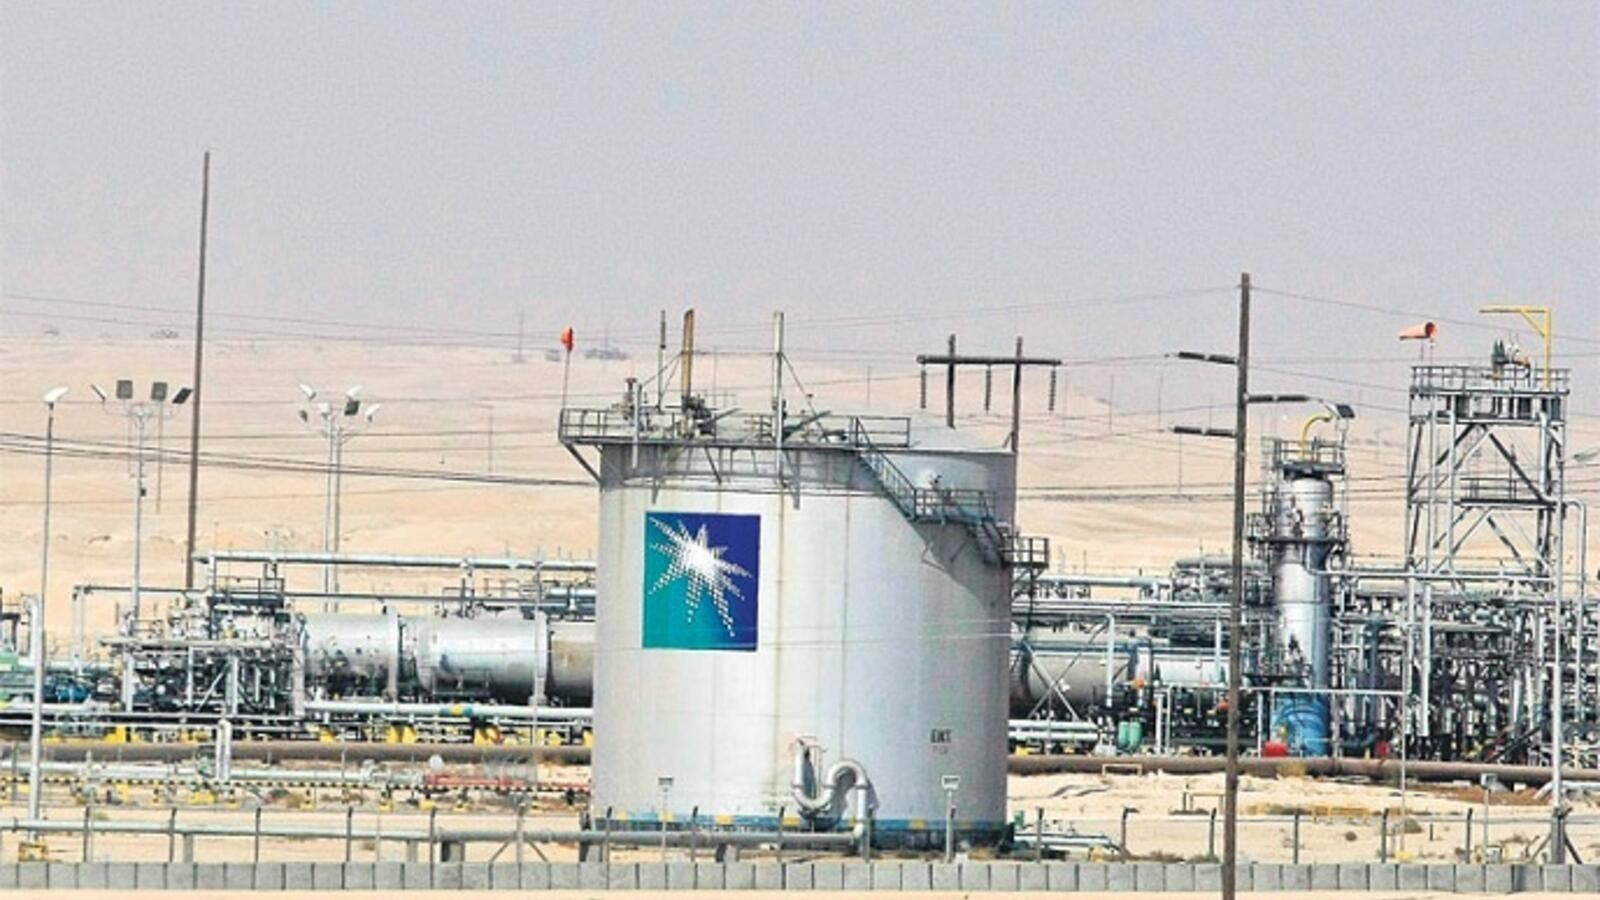 Saudi Aramco's New Oil-to-Chemicals Complex to Create 30,000